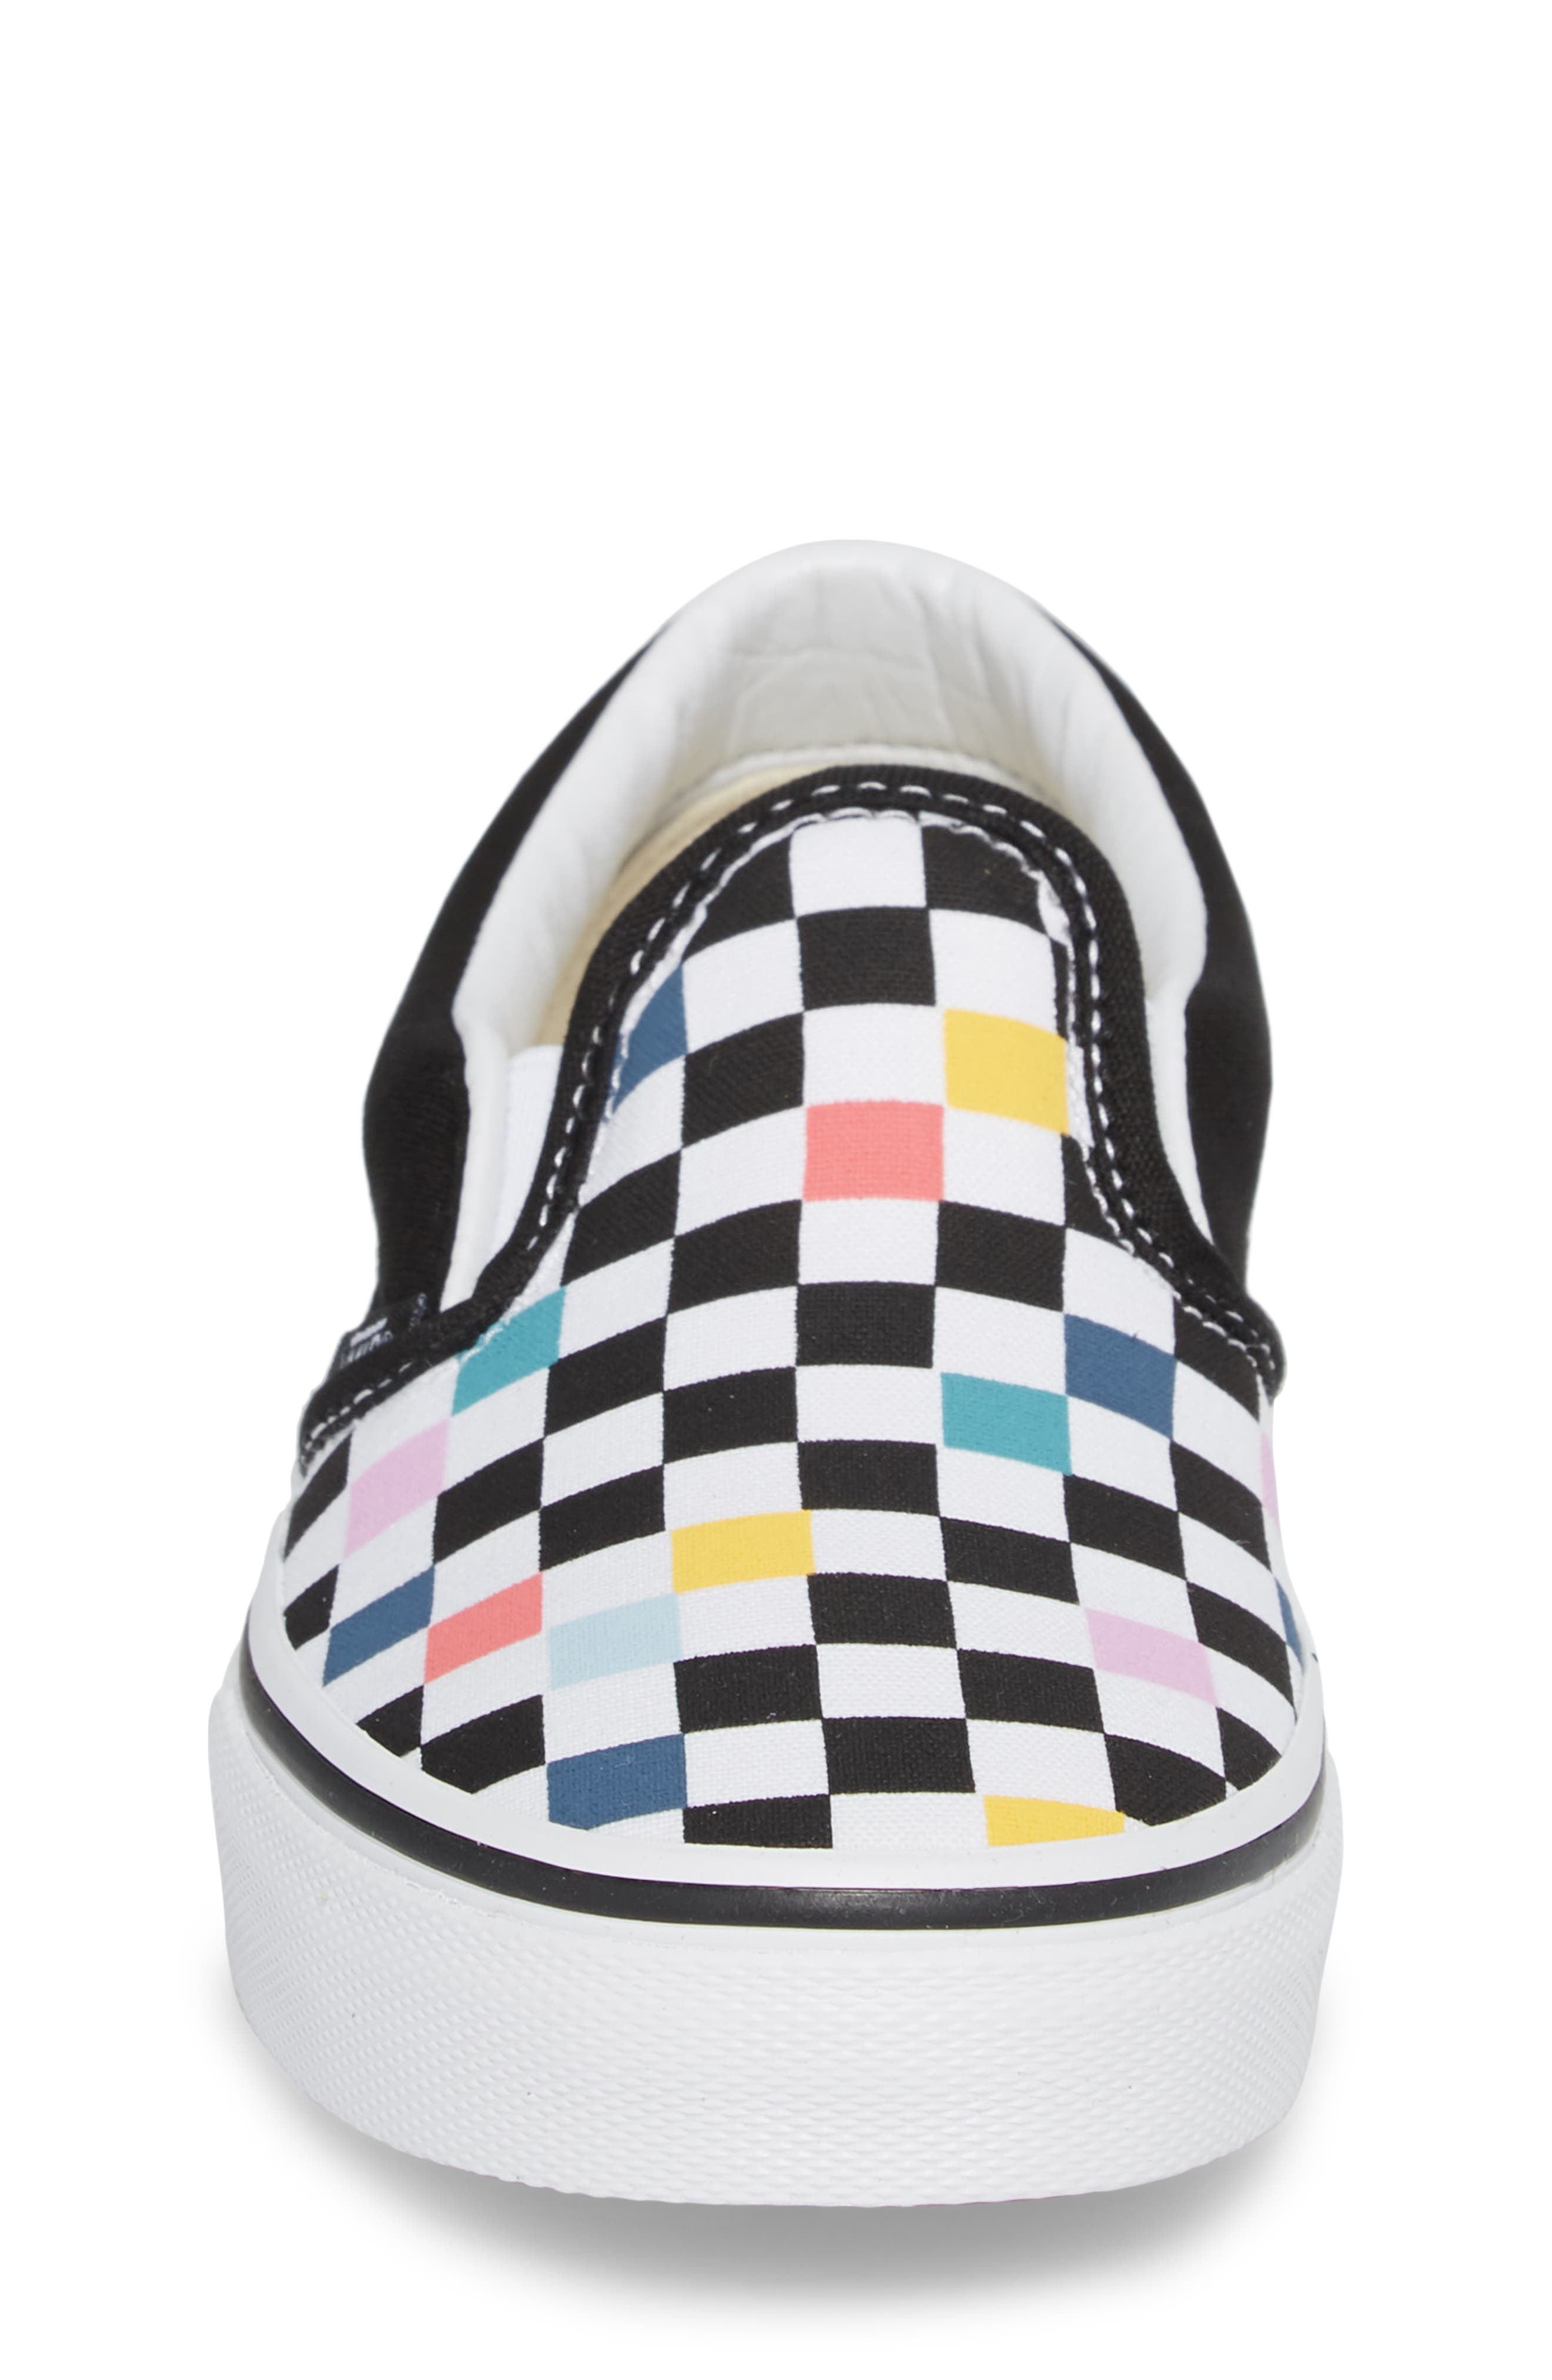 Party Check Slip-On Sneaker,                             Alternate thumbnail 4, color,                             Party Checker Multi/ Black